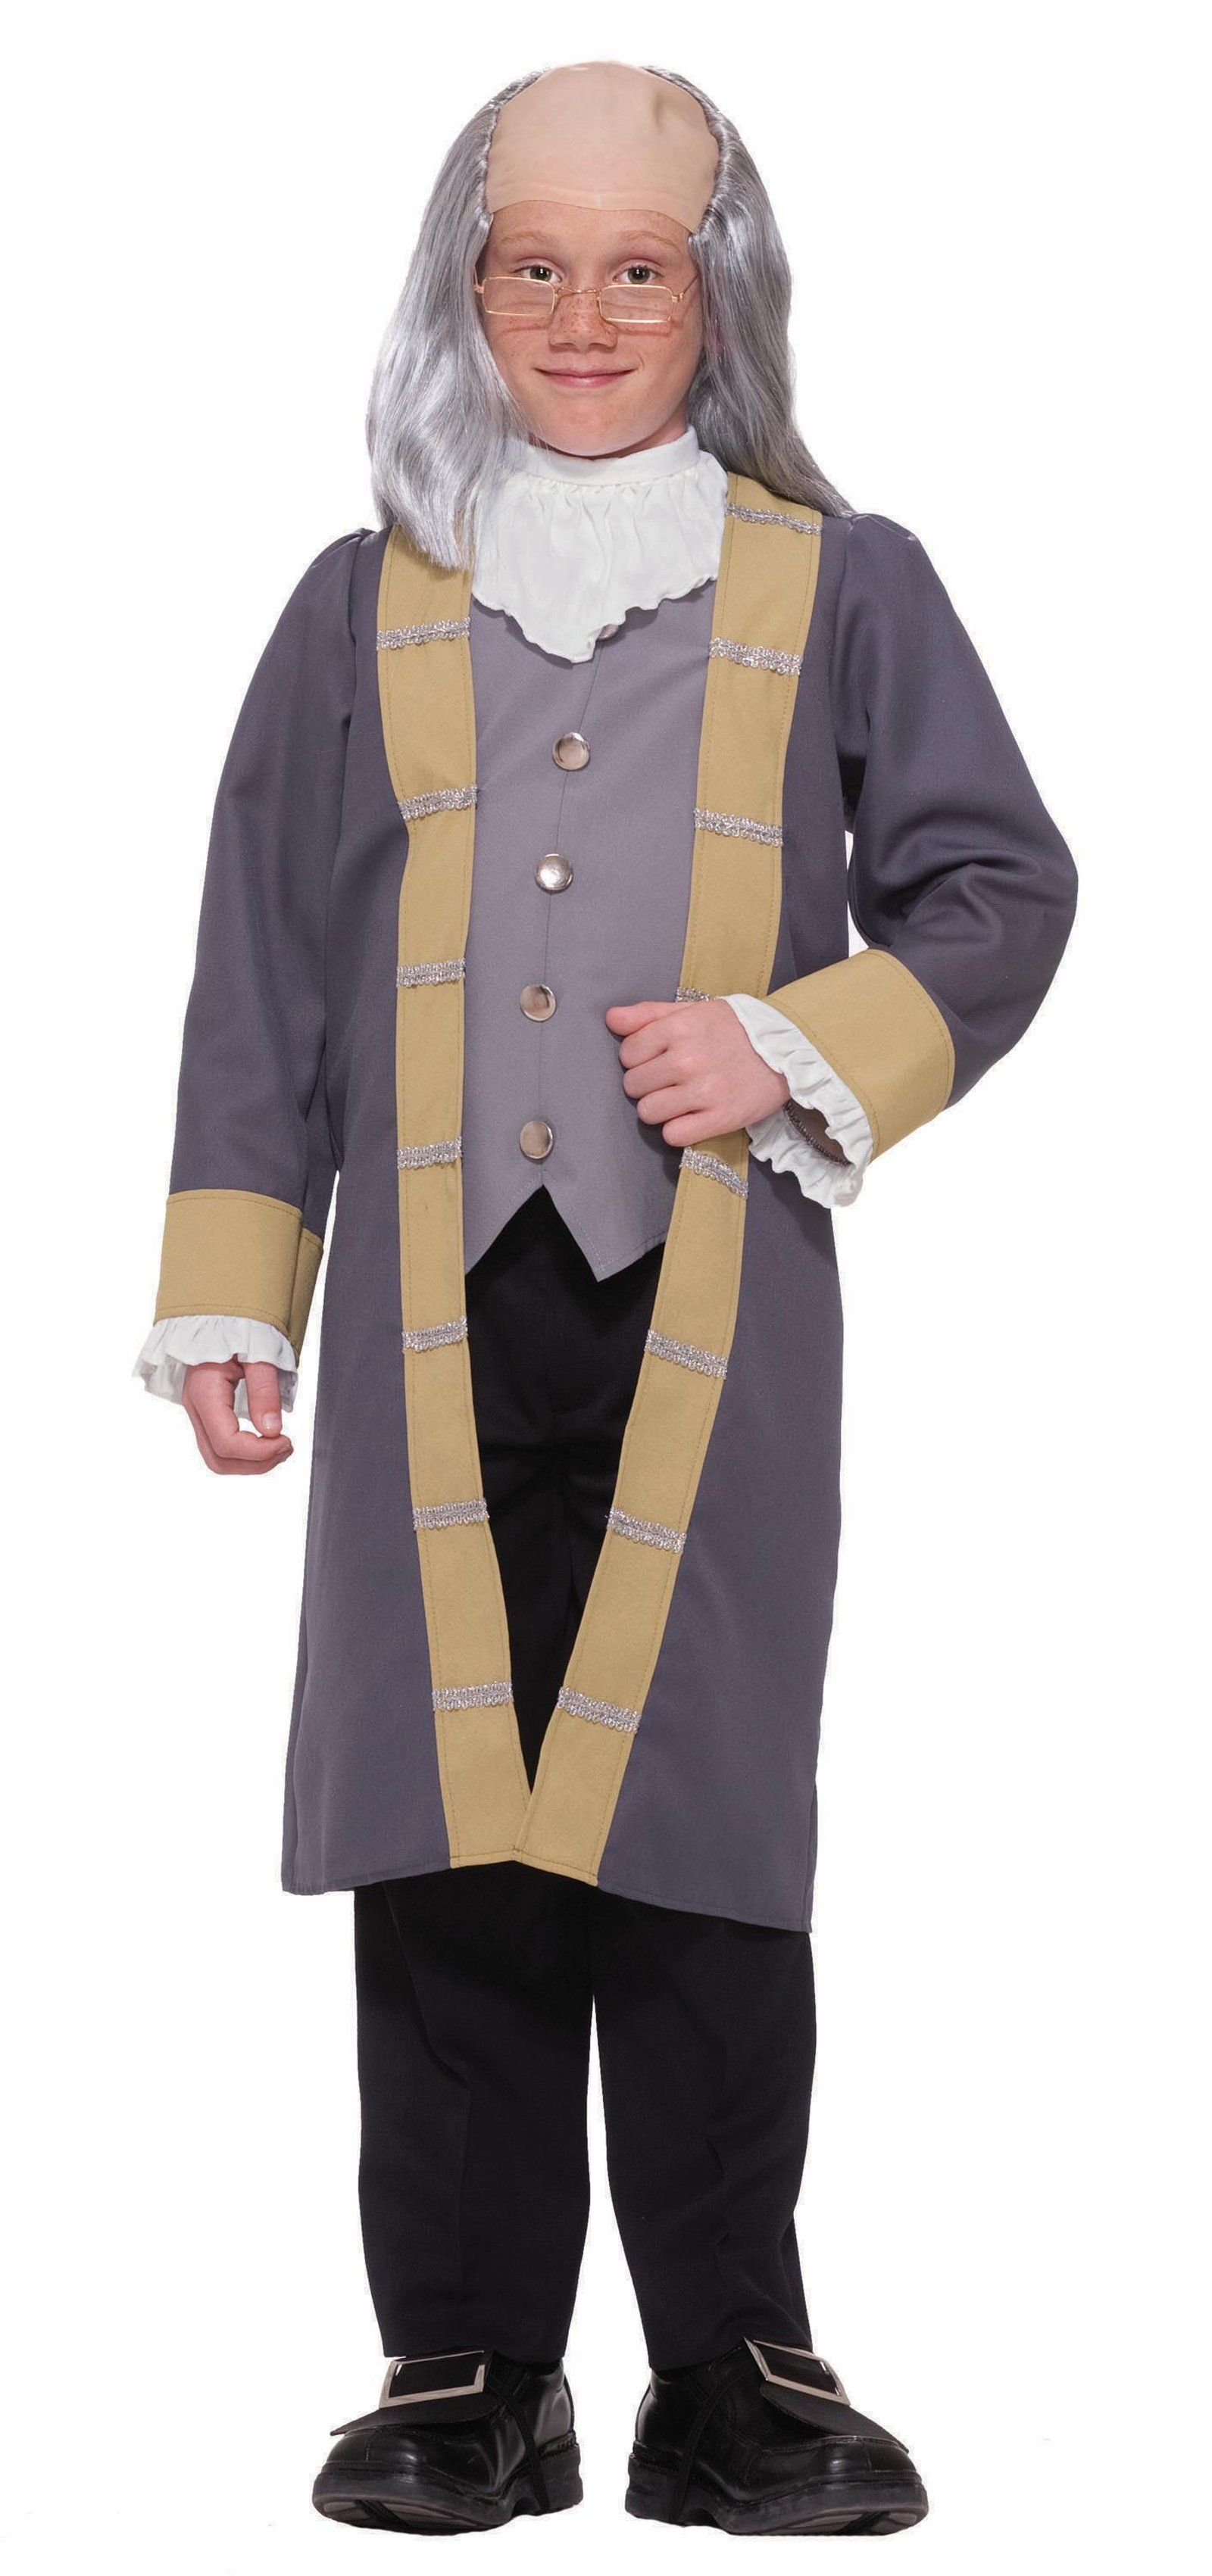 Cool Costumes Ben Franklin Child Costume just added